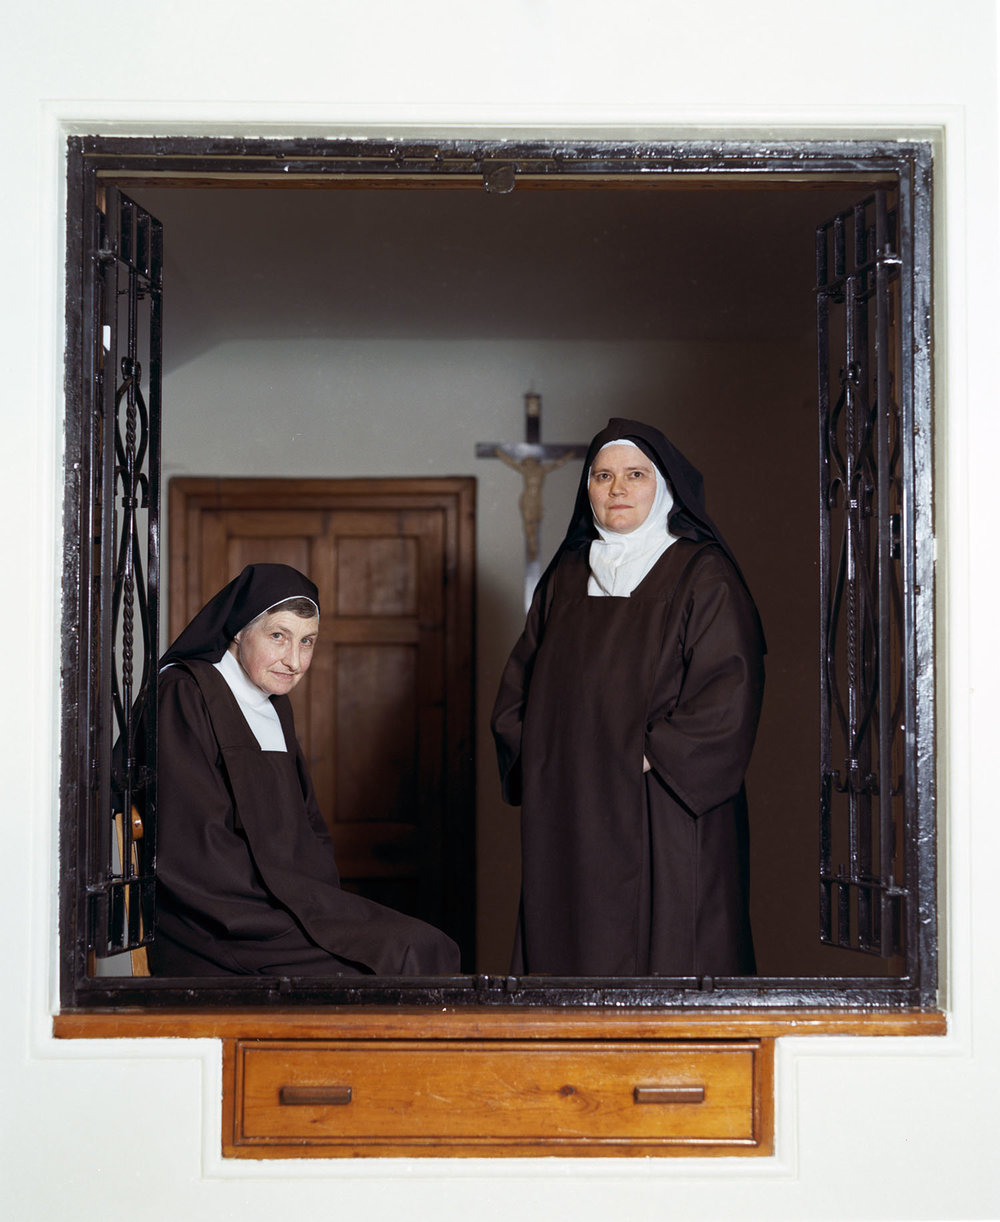 Sister Theresa and friend